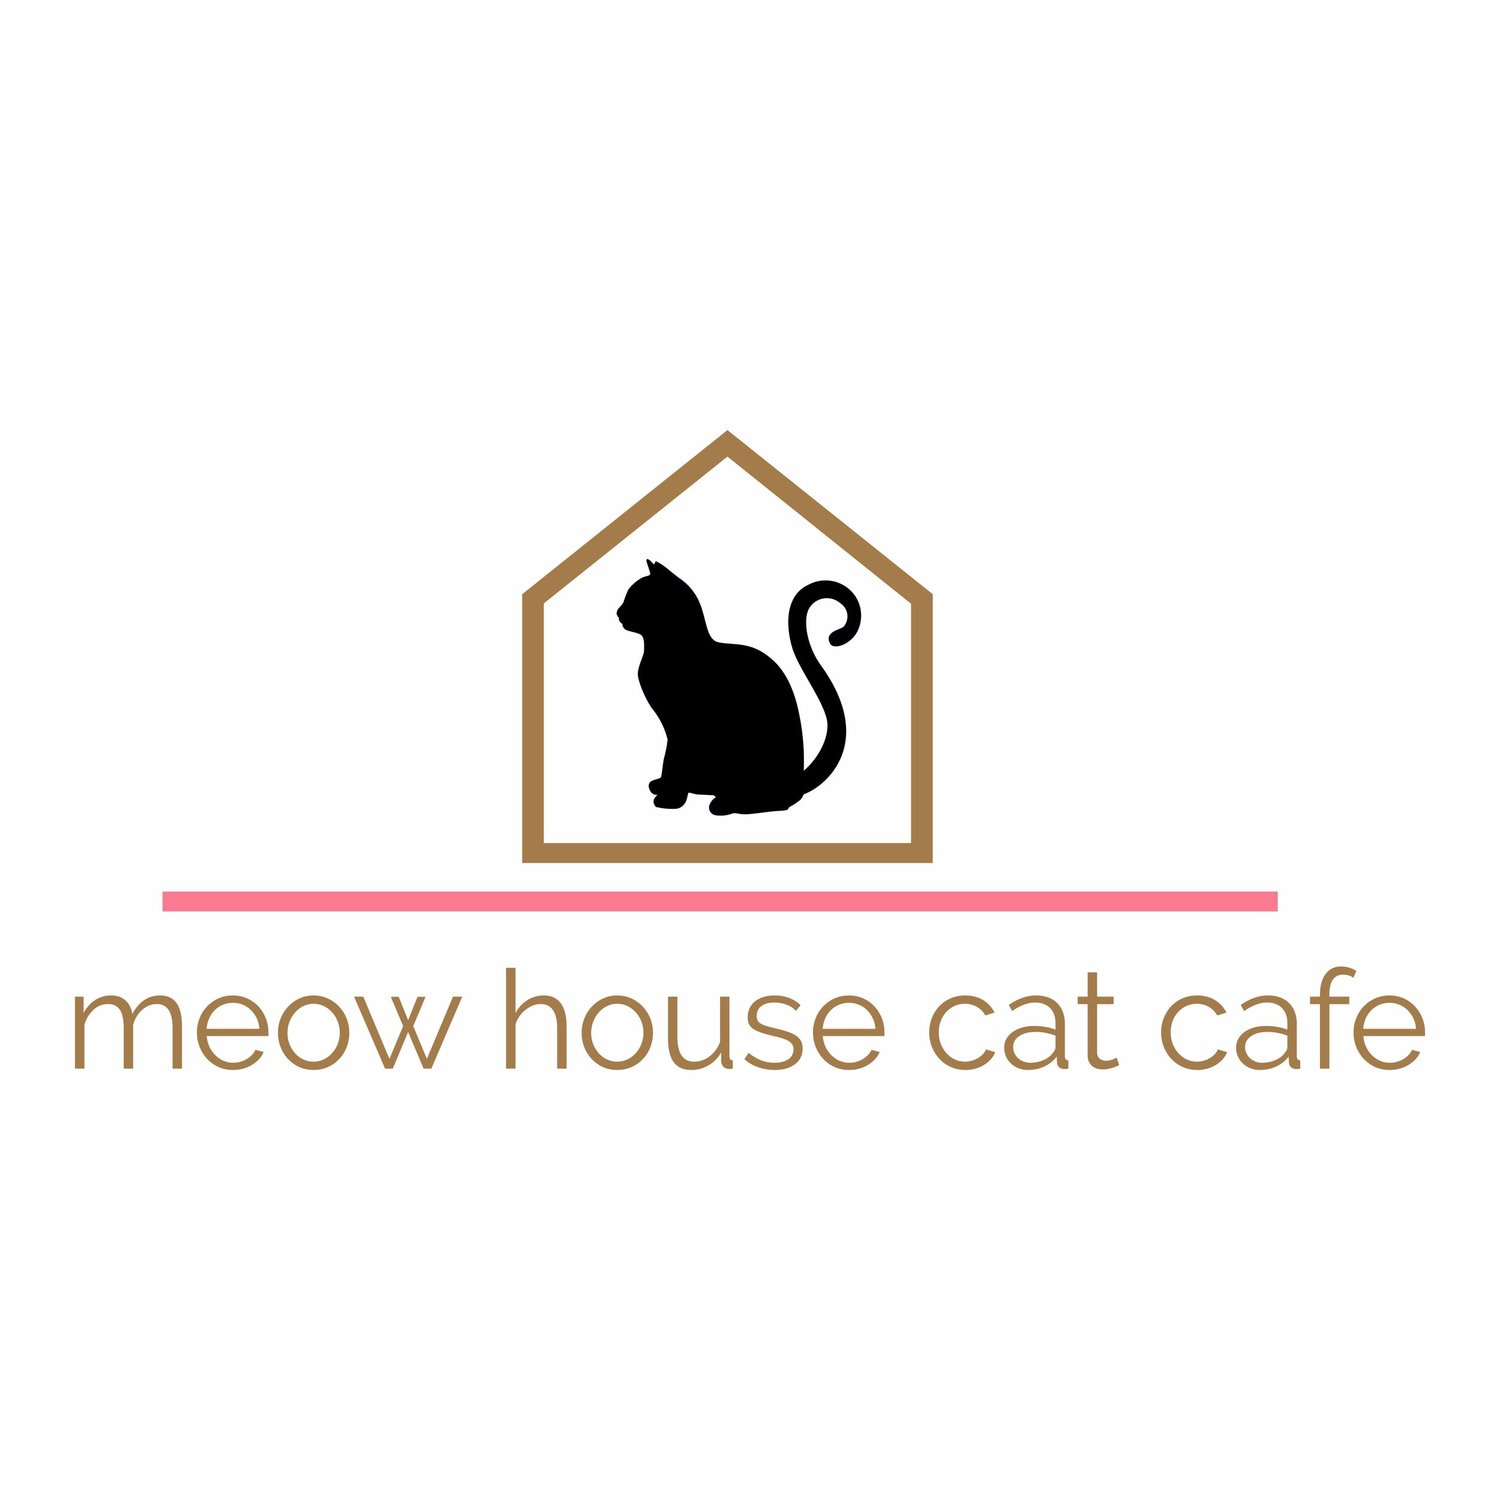 meow house cat cafe